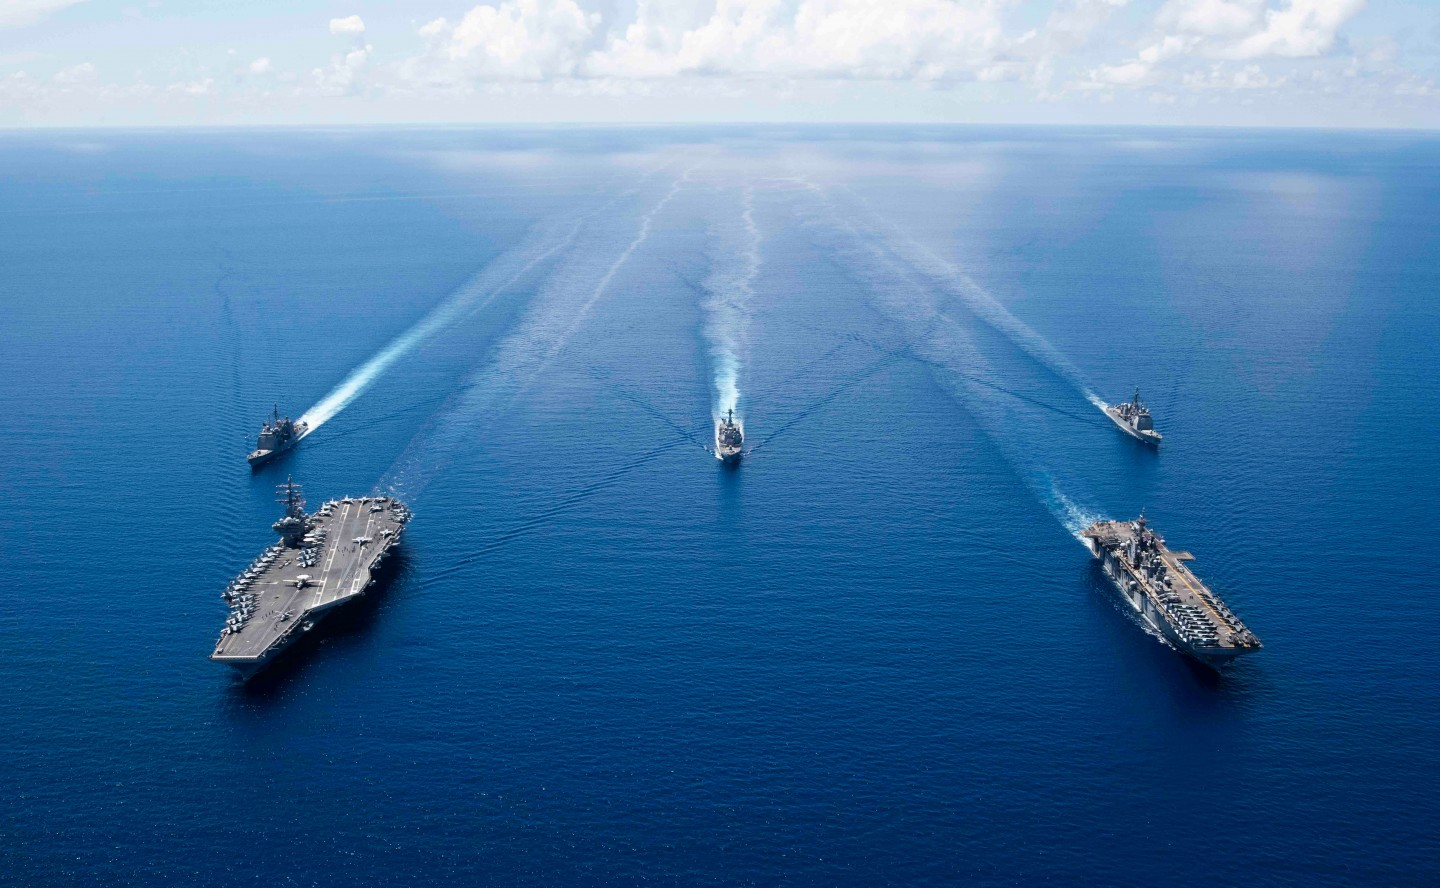 This US Navy photo obtained October 7, 2019 shows the aircraft carrier USS Ronald Reagan (CVN 76)(L), and the amphibious assault ship USS Boxer (LHD 6) and ships from the Ronald Reagan Carrier Strike Group and the Boxer Amphibious Ready Group underway in formation while conducting security and stability operations in the US 7th Fleet area of operations on October 6, 2019 in the South China Sea. (AFP/US Navy/Erwin Jacob V. Miciano/Handout)